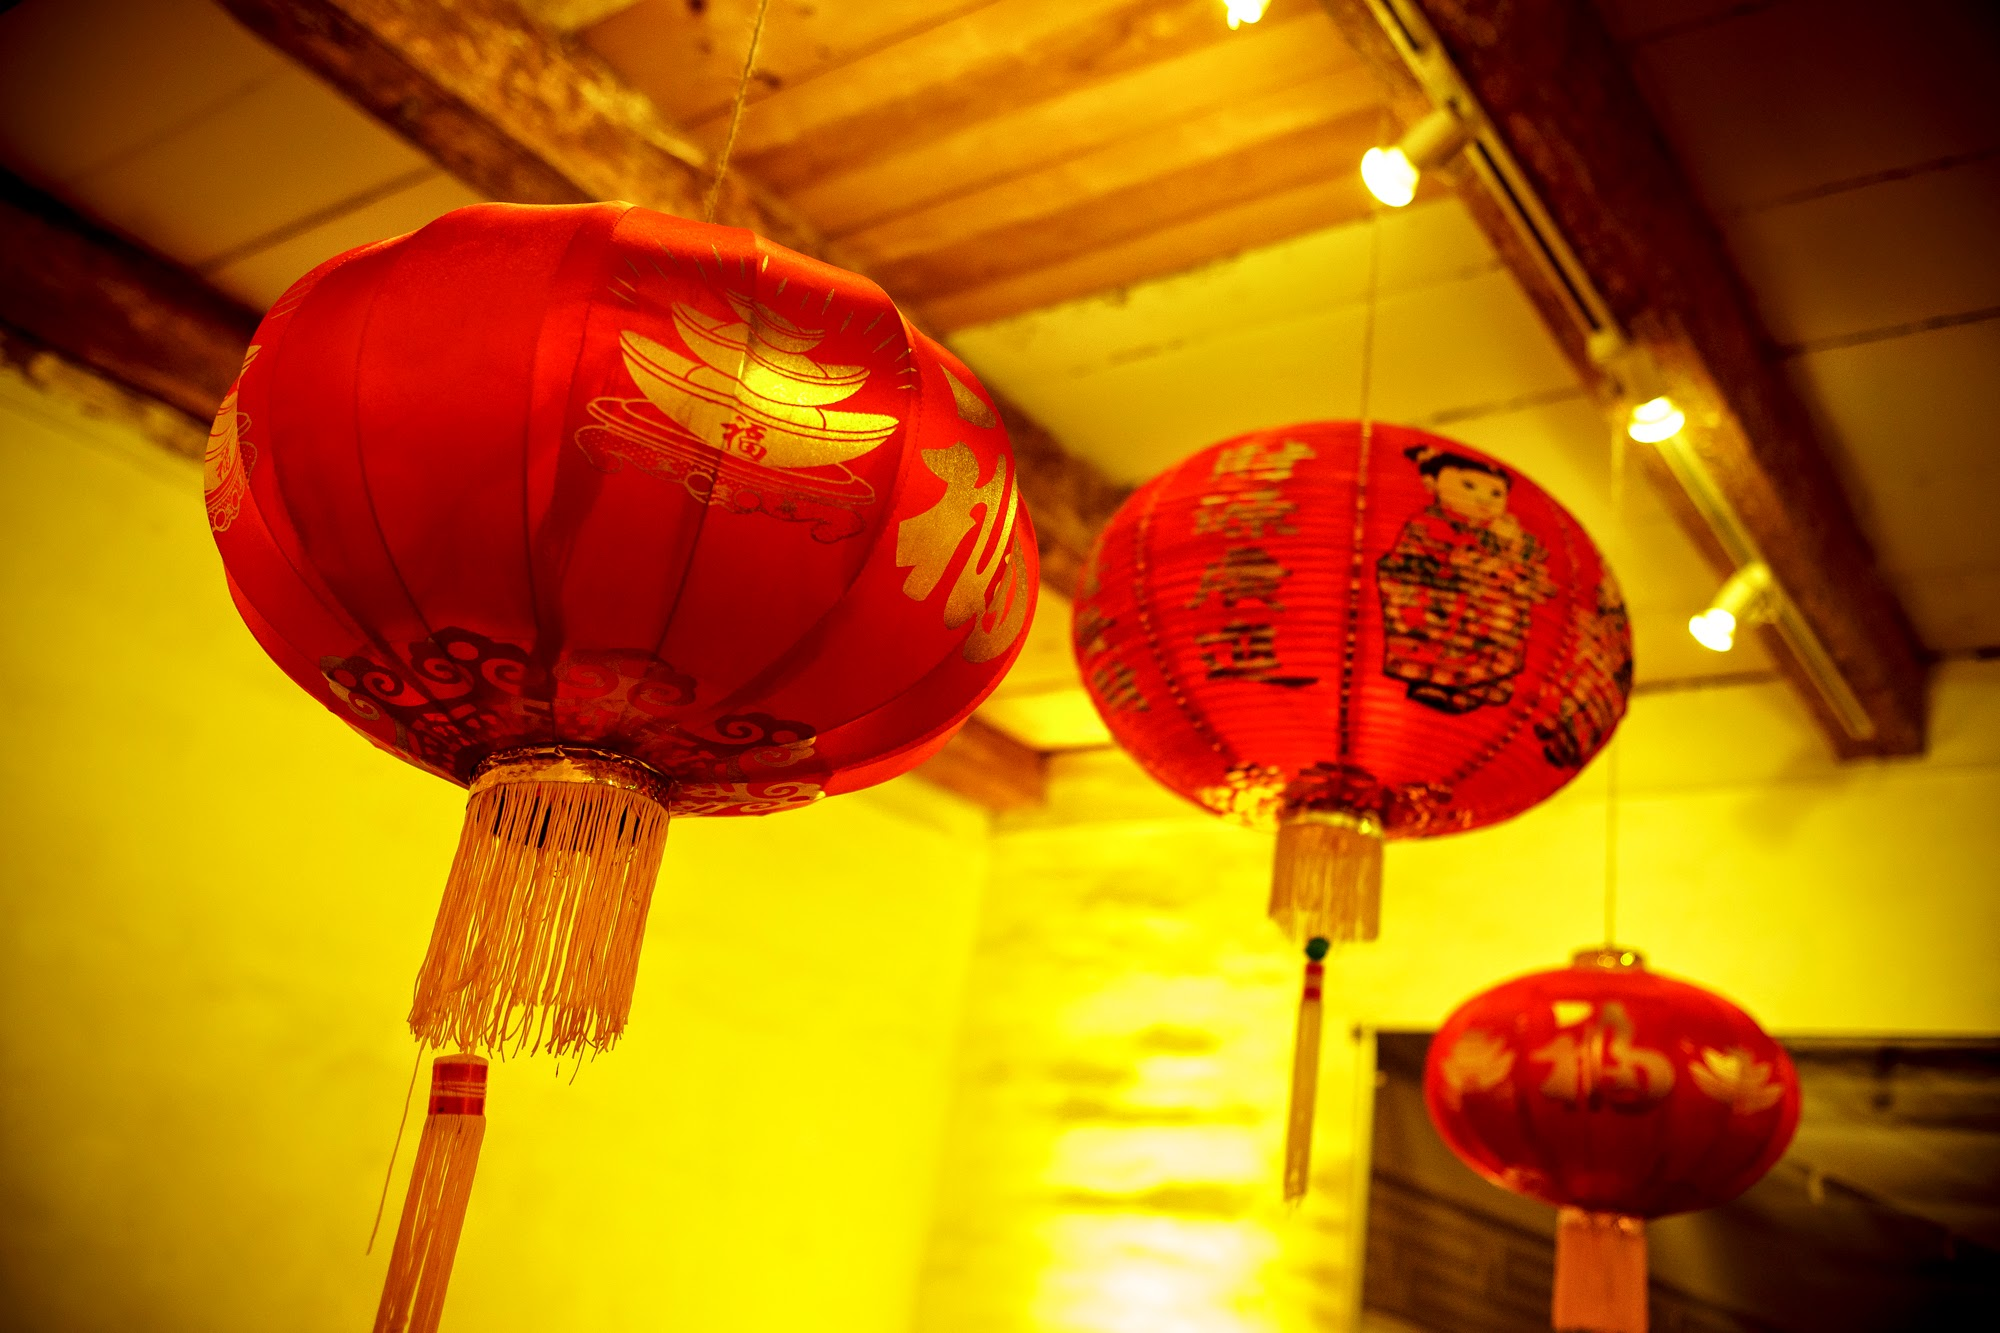 felicievents.com | Corporate Event planner | Asian Theme Dinner | Fundraiser | Non-Profit | Japanes decor ideas | Lanterns